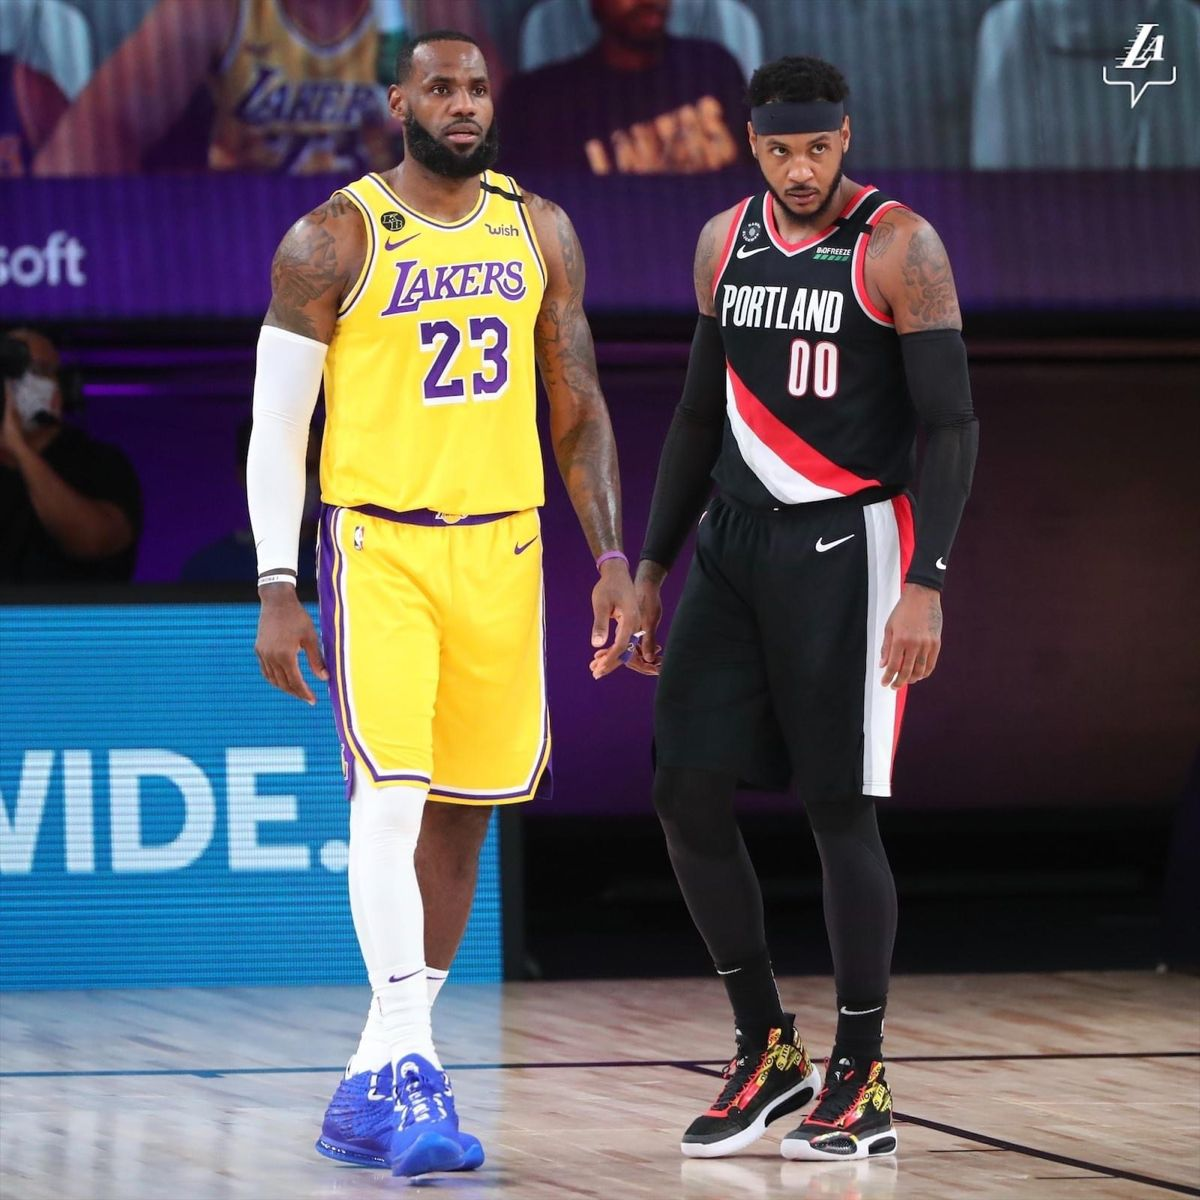 Lebron James Carmelo Anthony In 2020 Lebron James Los Angeles Lakers Carmelo Anthony